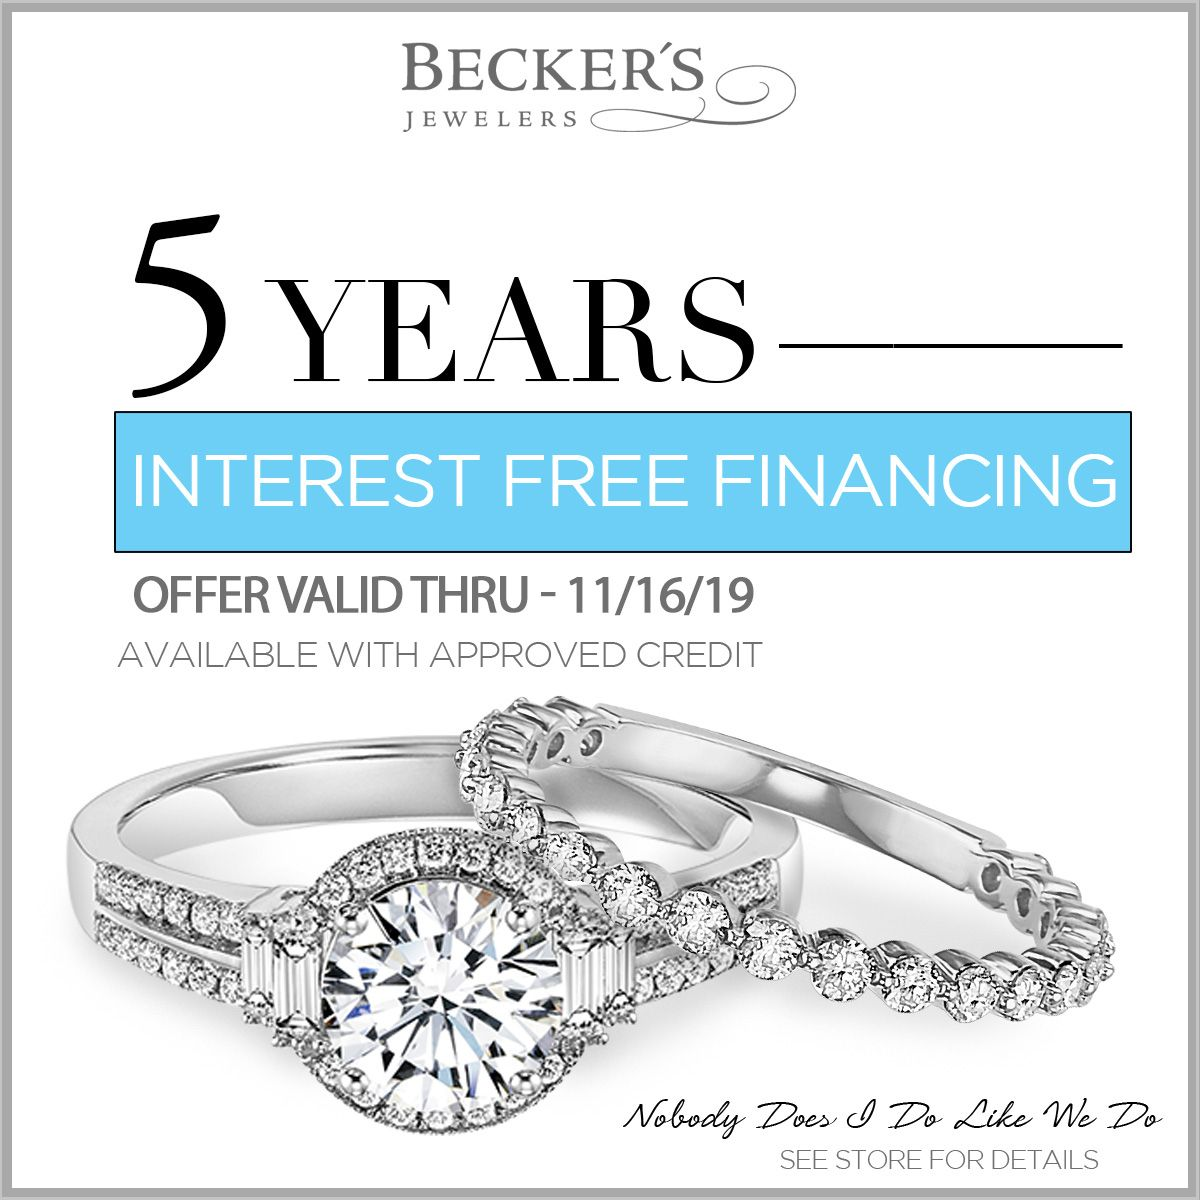 20+ Do jewelry stores finance engagement rings ideas in 2021